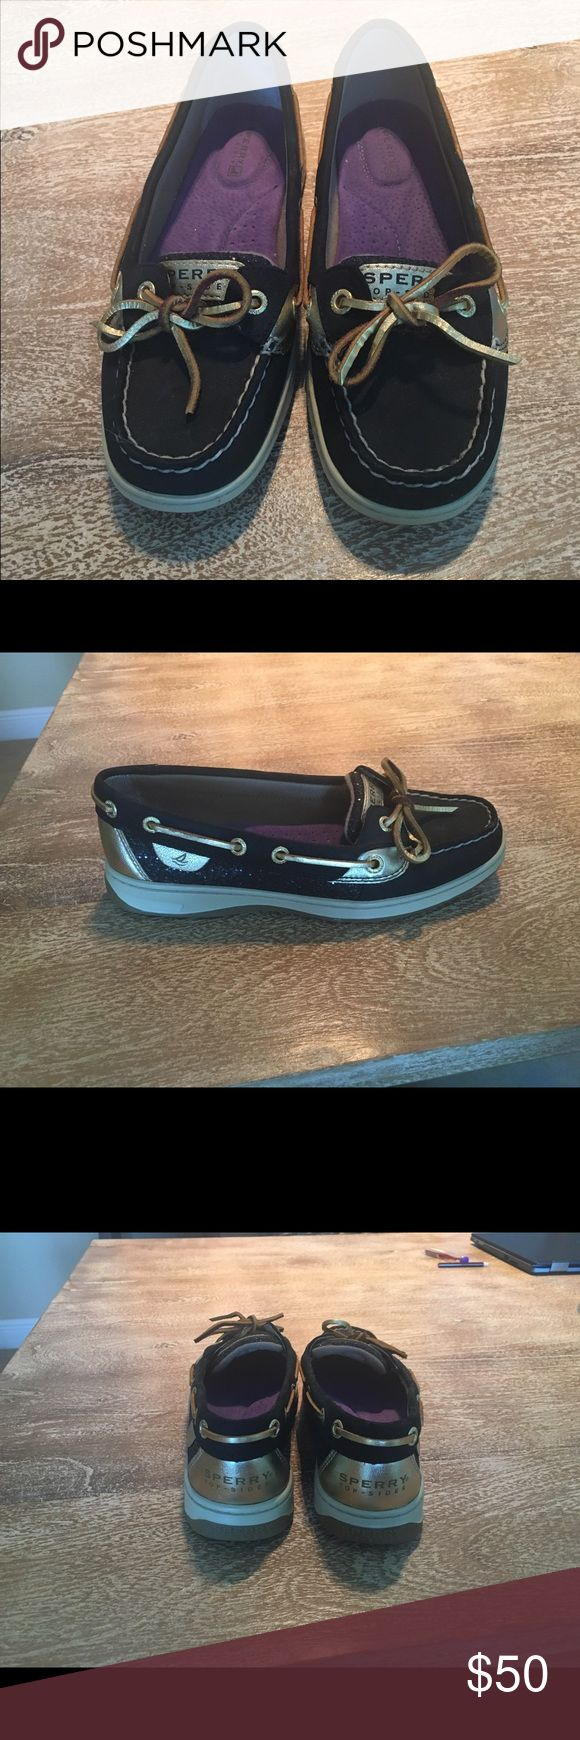 Black and Gold Sperry Topsiders size 7 NWOT. Black and Gold Sperrys. Size 7M. Never worn. No box. Sperry Top-Sider Shoes Flats & Loafers